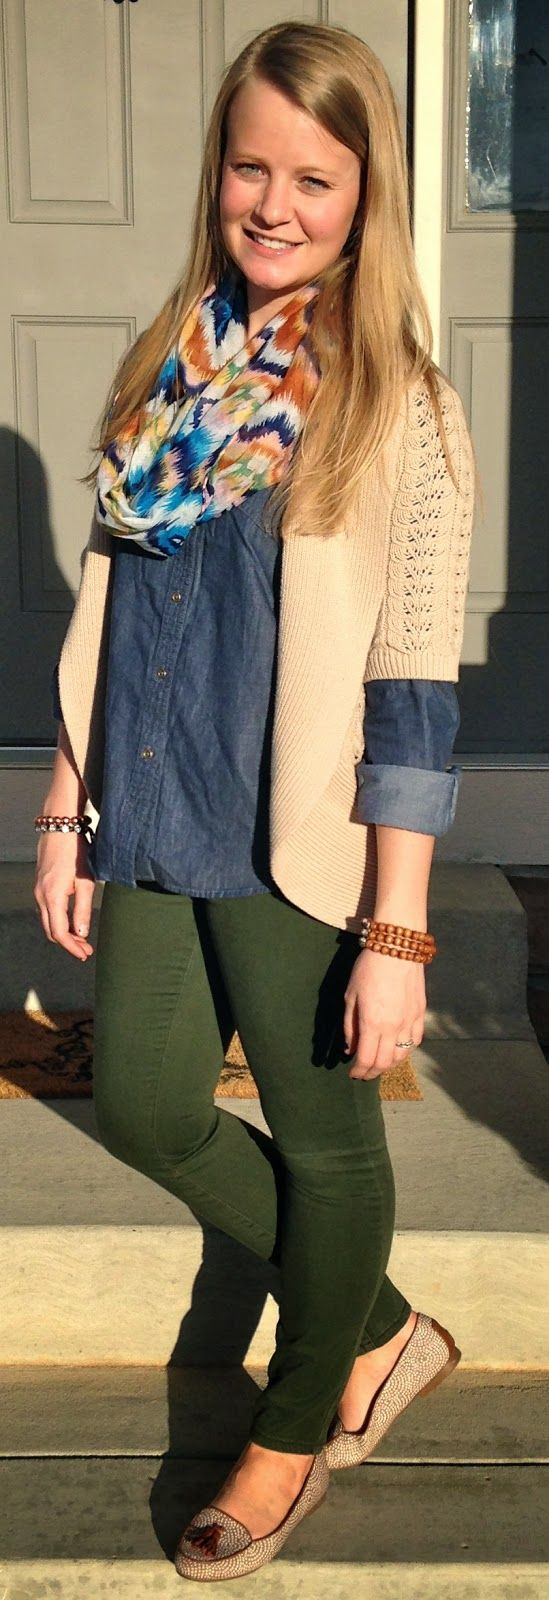 Sweet Bananie - chambray, green pants, ikat infinity scarf & loafers, easy peezy early morning outfit